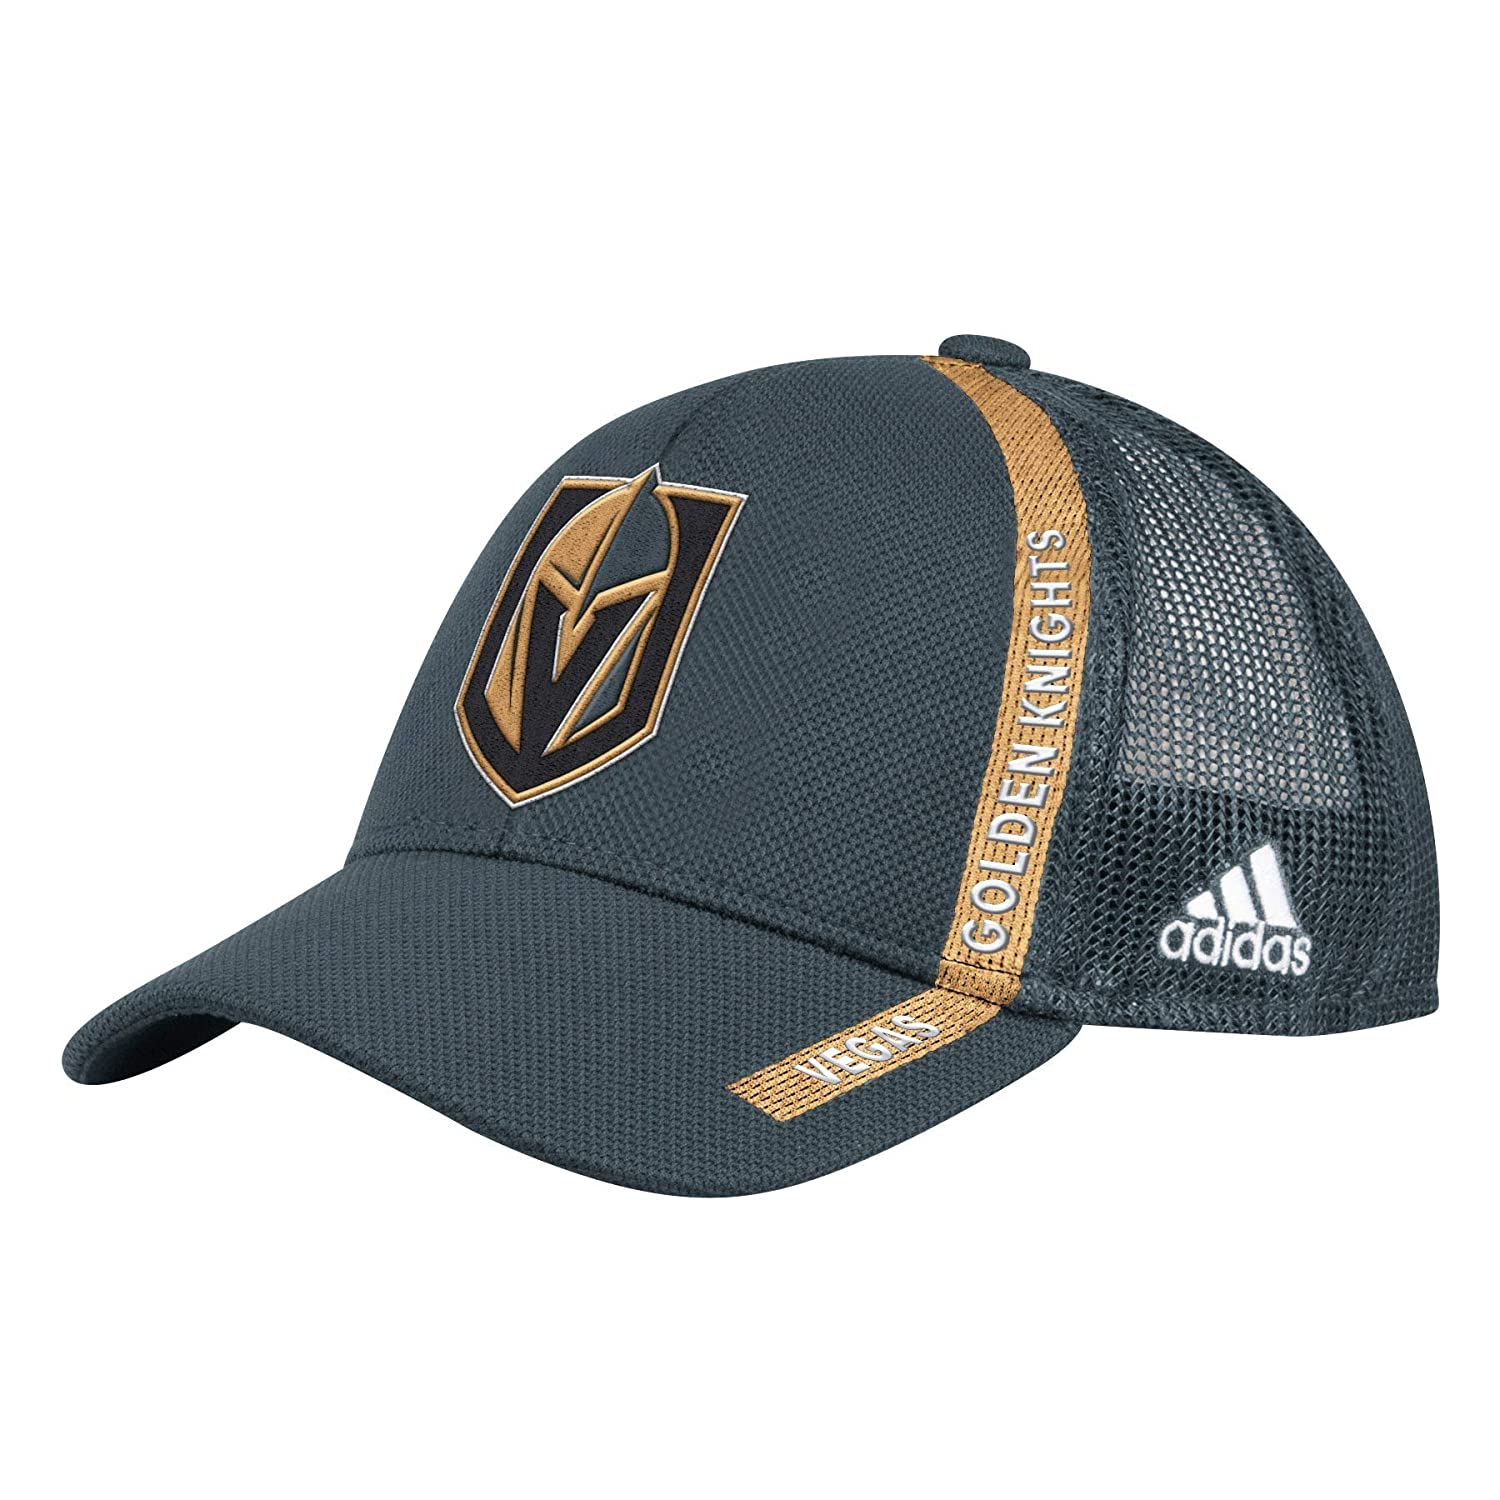 492333ae Amazon.com : adidas Officially Licensed NHL Vegas Golden Knights Grey  Structured Adjustable Mesh OSFA Hat : Sports & Outdoors